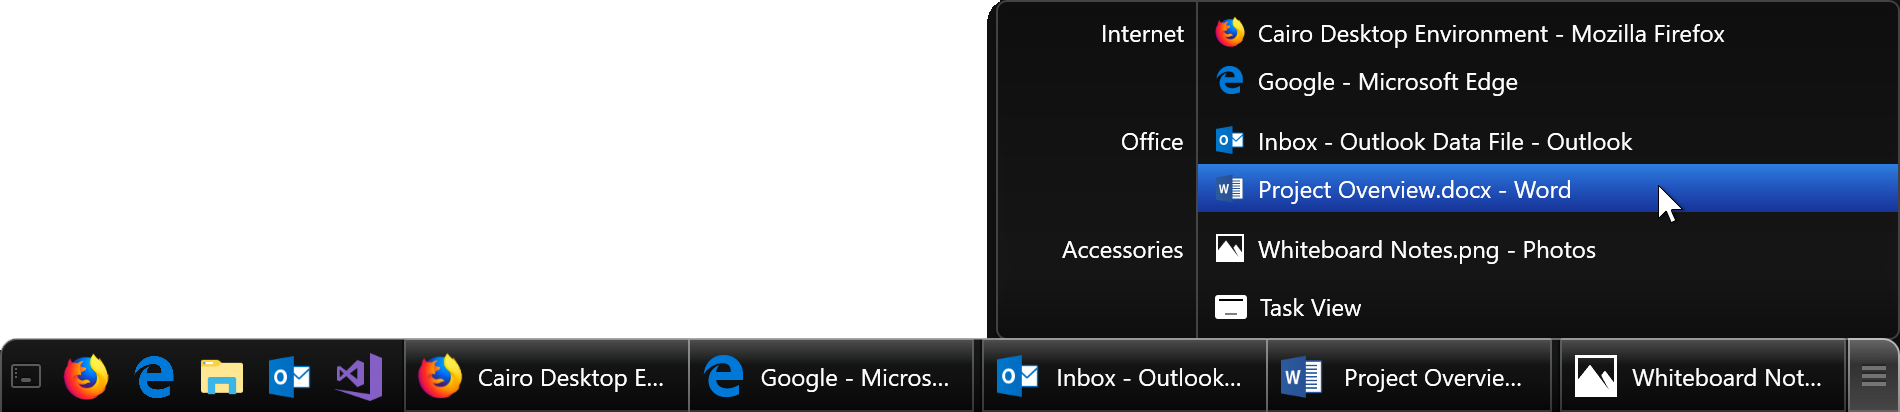 Taskbar screenshot